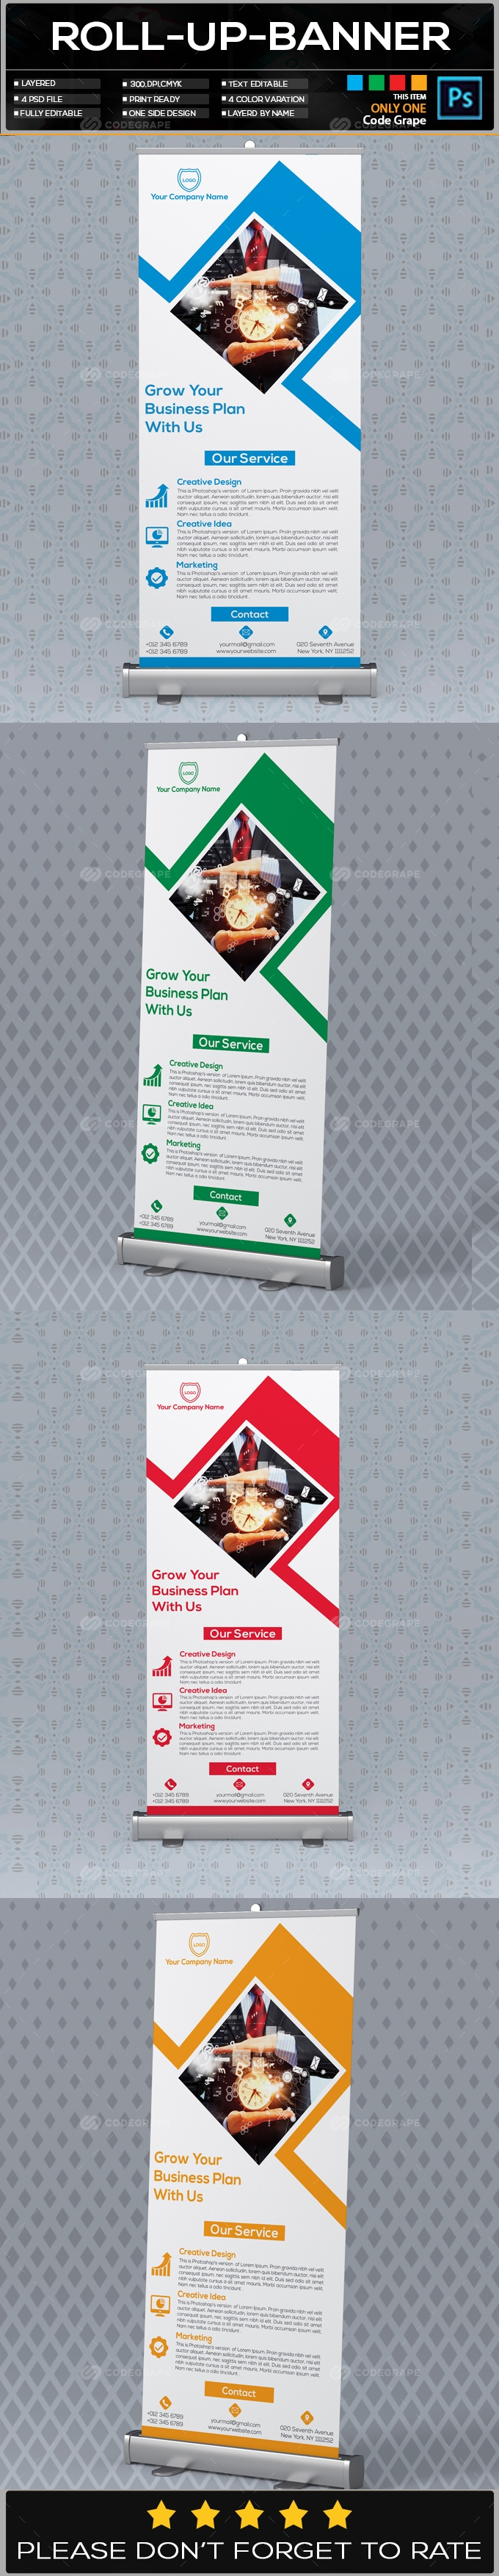 Roll Up Banner Vol - 07